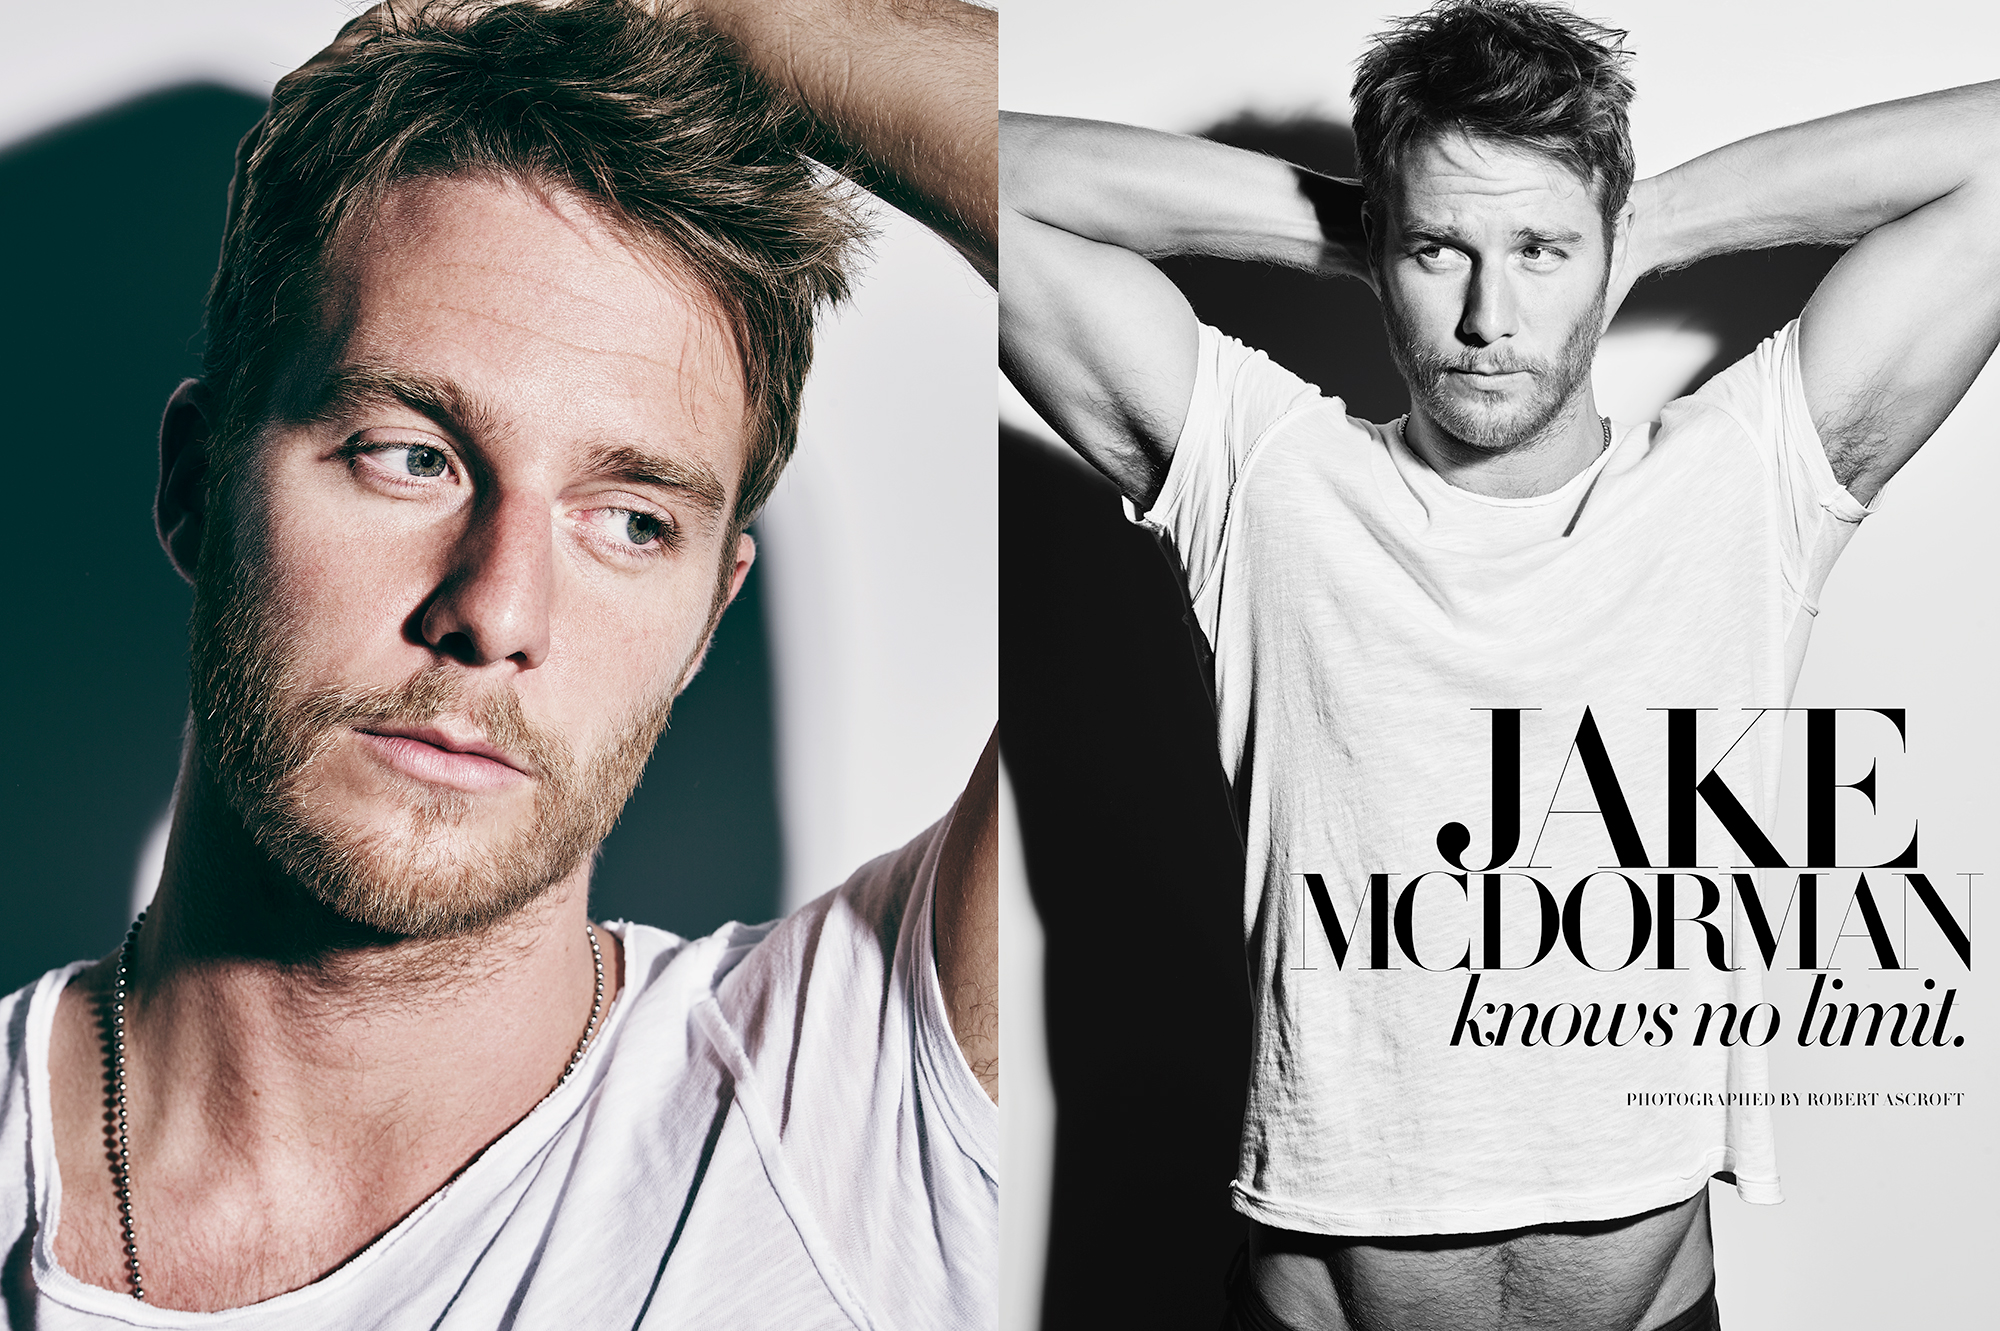 Jake-mcdorman-by-robert-ascroft-02